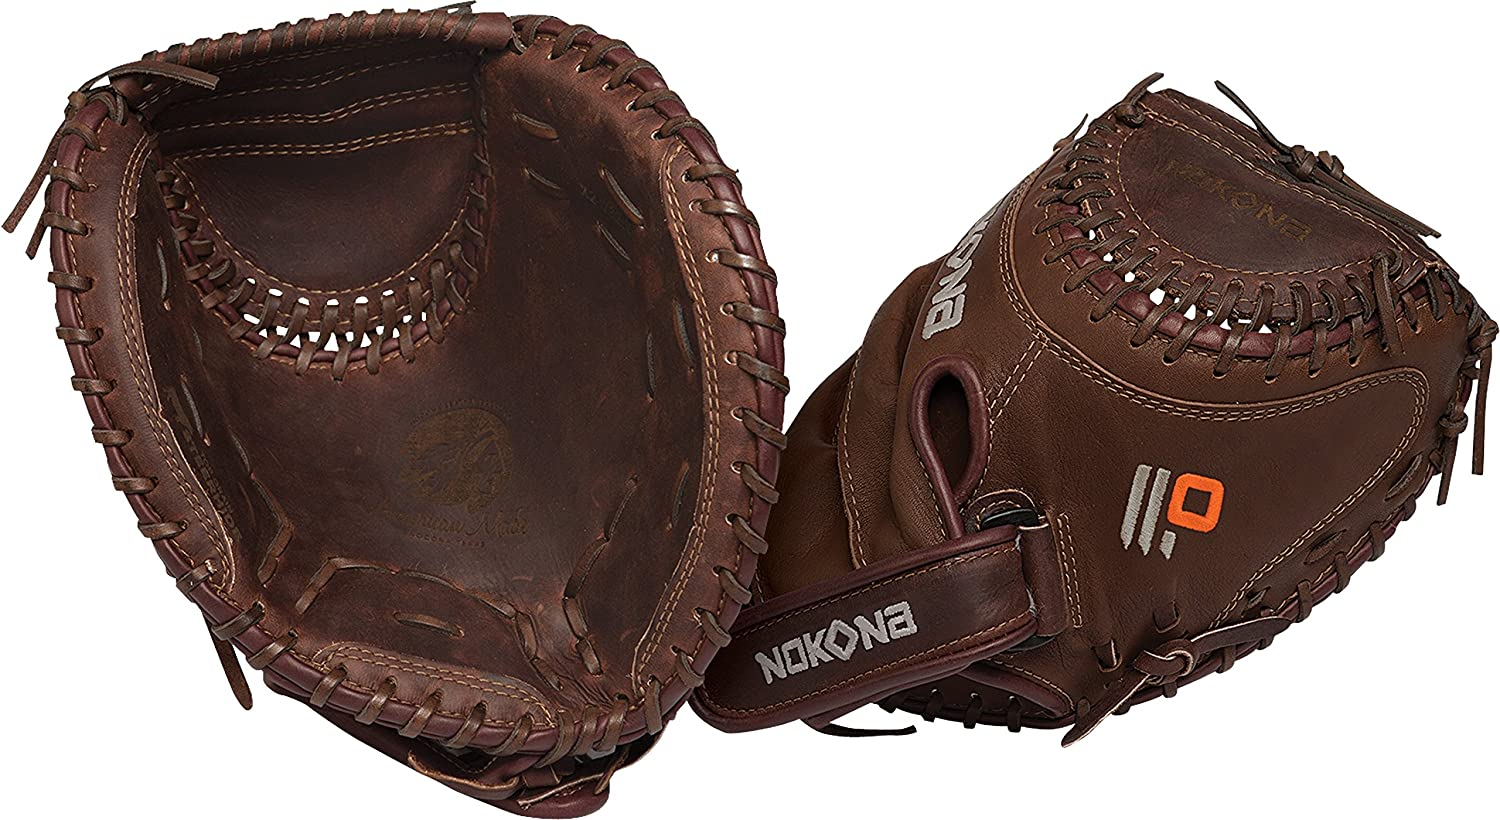 Nokona Legend Pro 32.5 Fastpitch Catchers Mitt L-V3250 L-V3250 FP